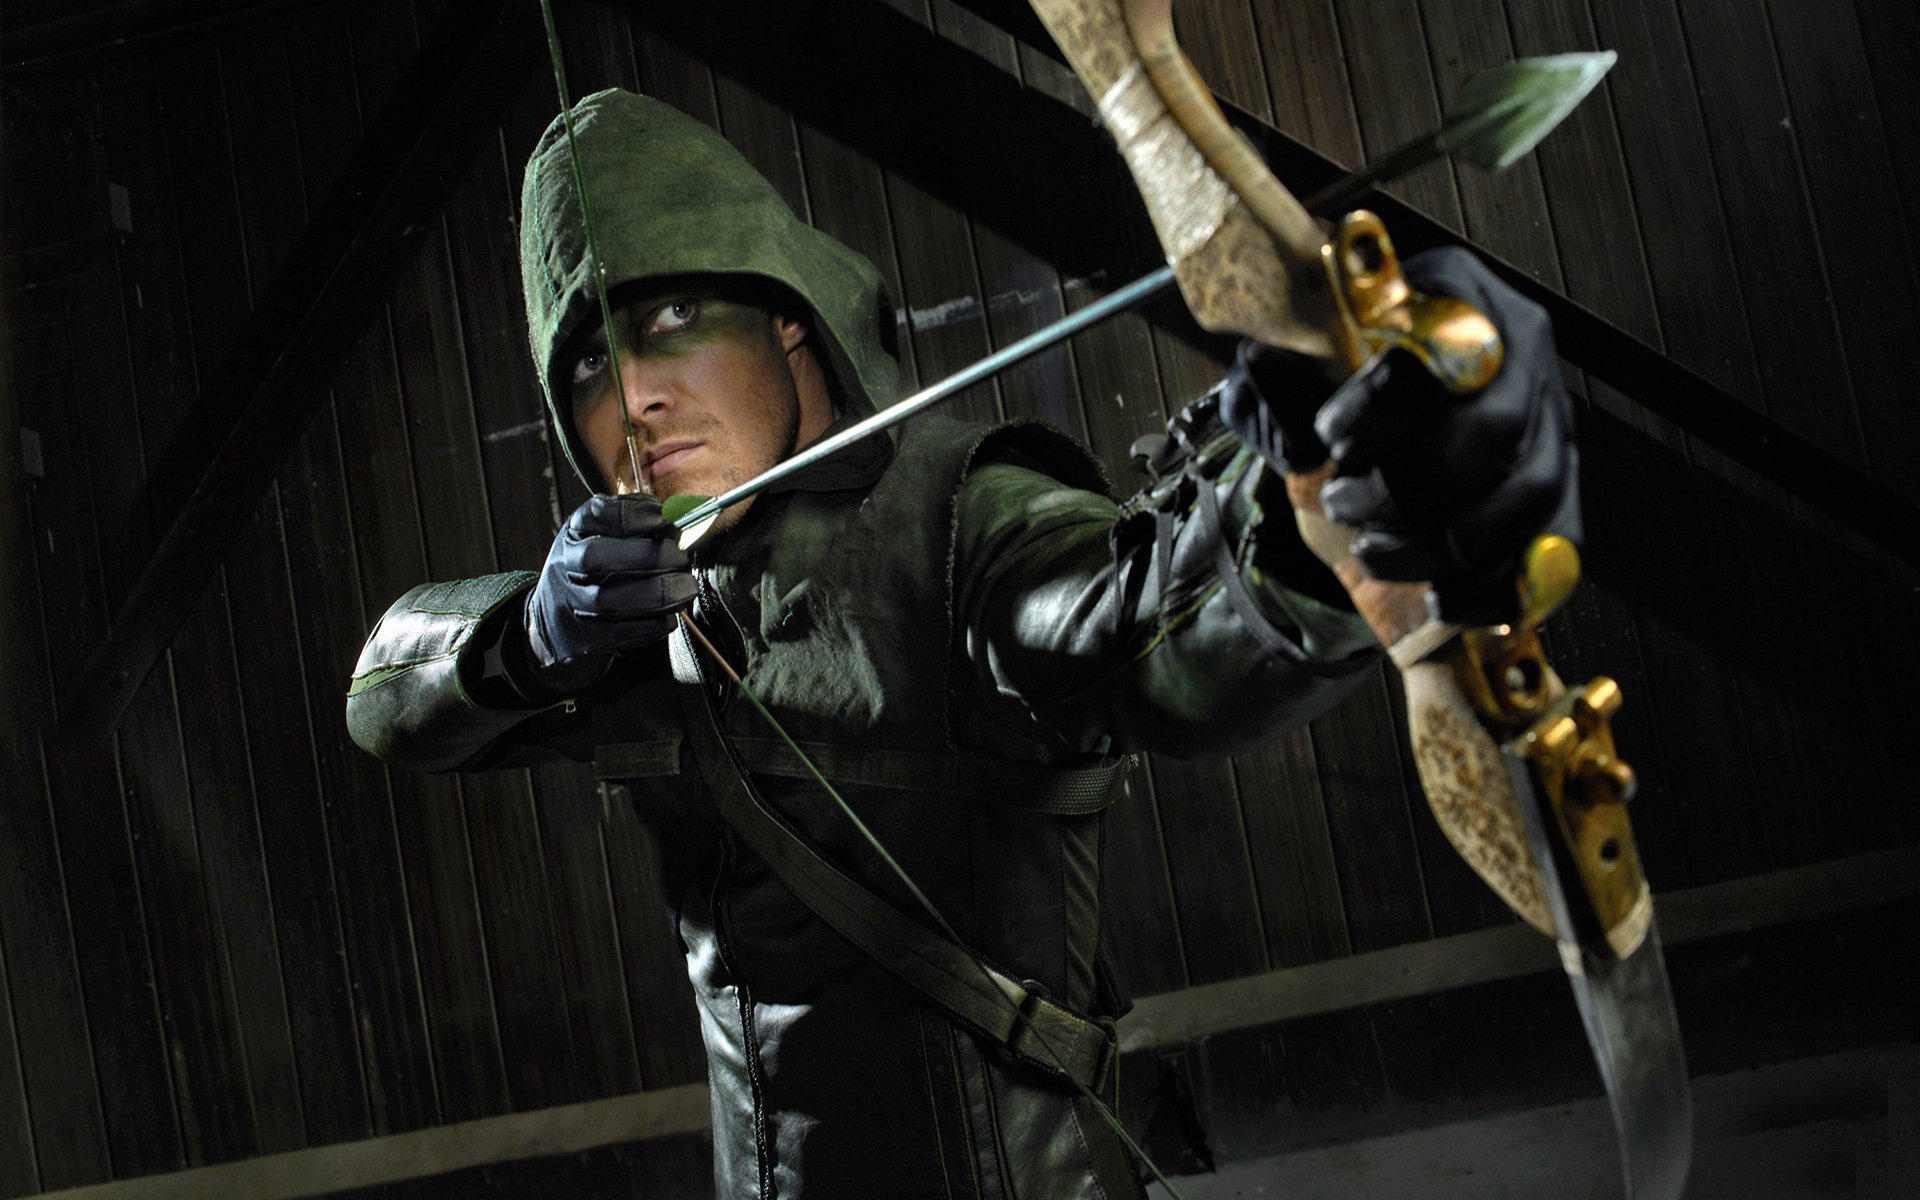 Okay my dear friends if you want to know more about Green Arrow you can check out the following link  sc 1 st  fandomsky - WordPress.com & Green Arrow Oliver Queen cosplay costume In Moviescostume.com online ...